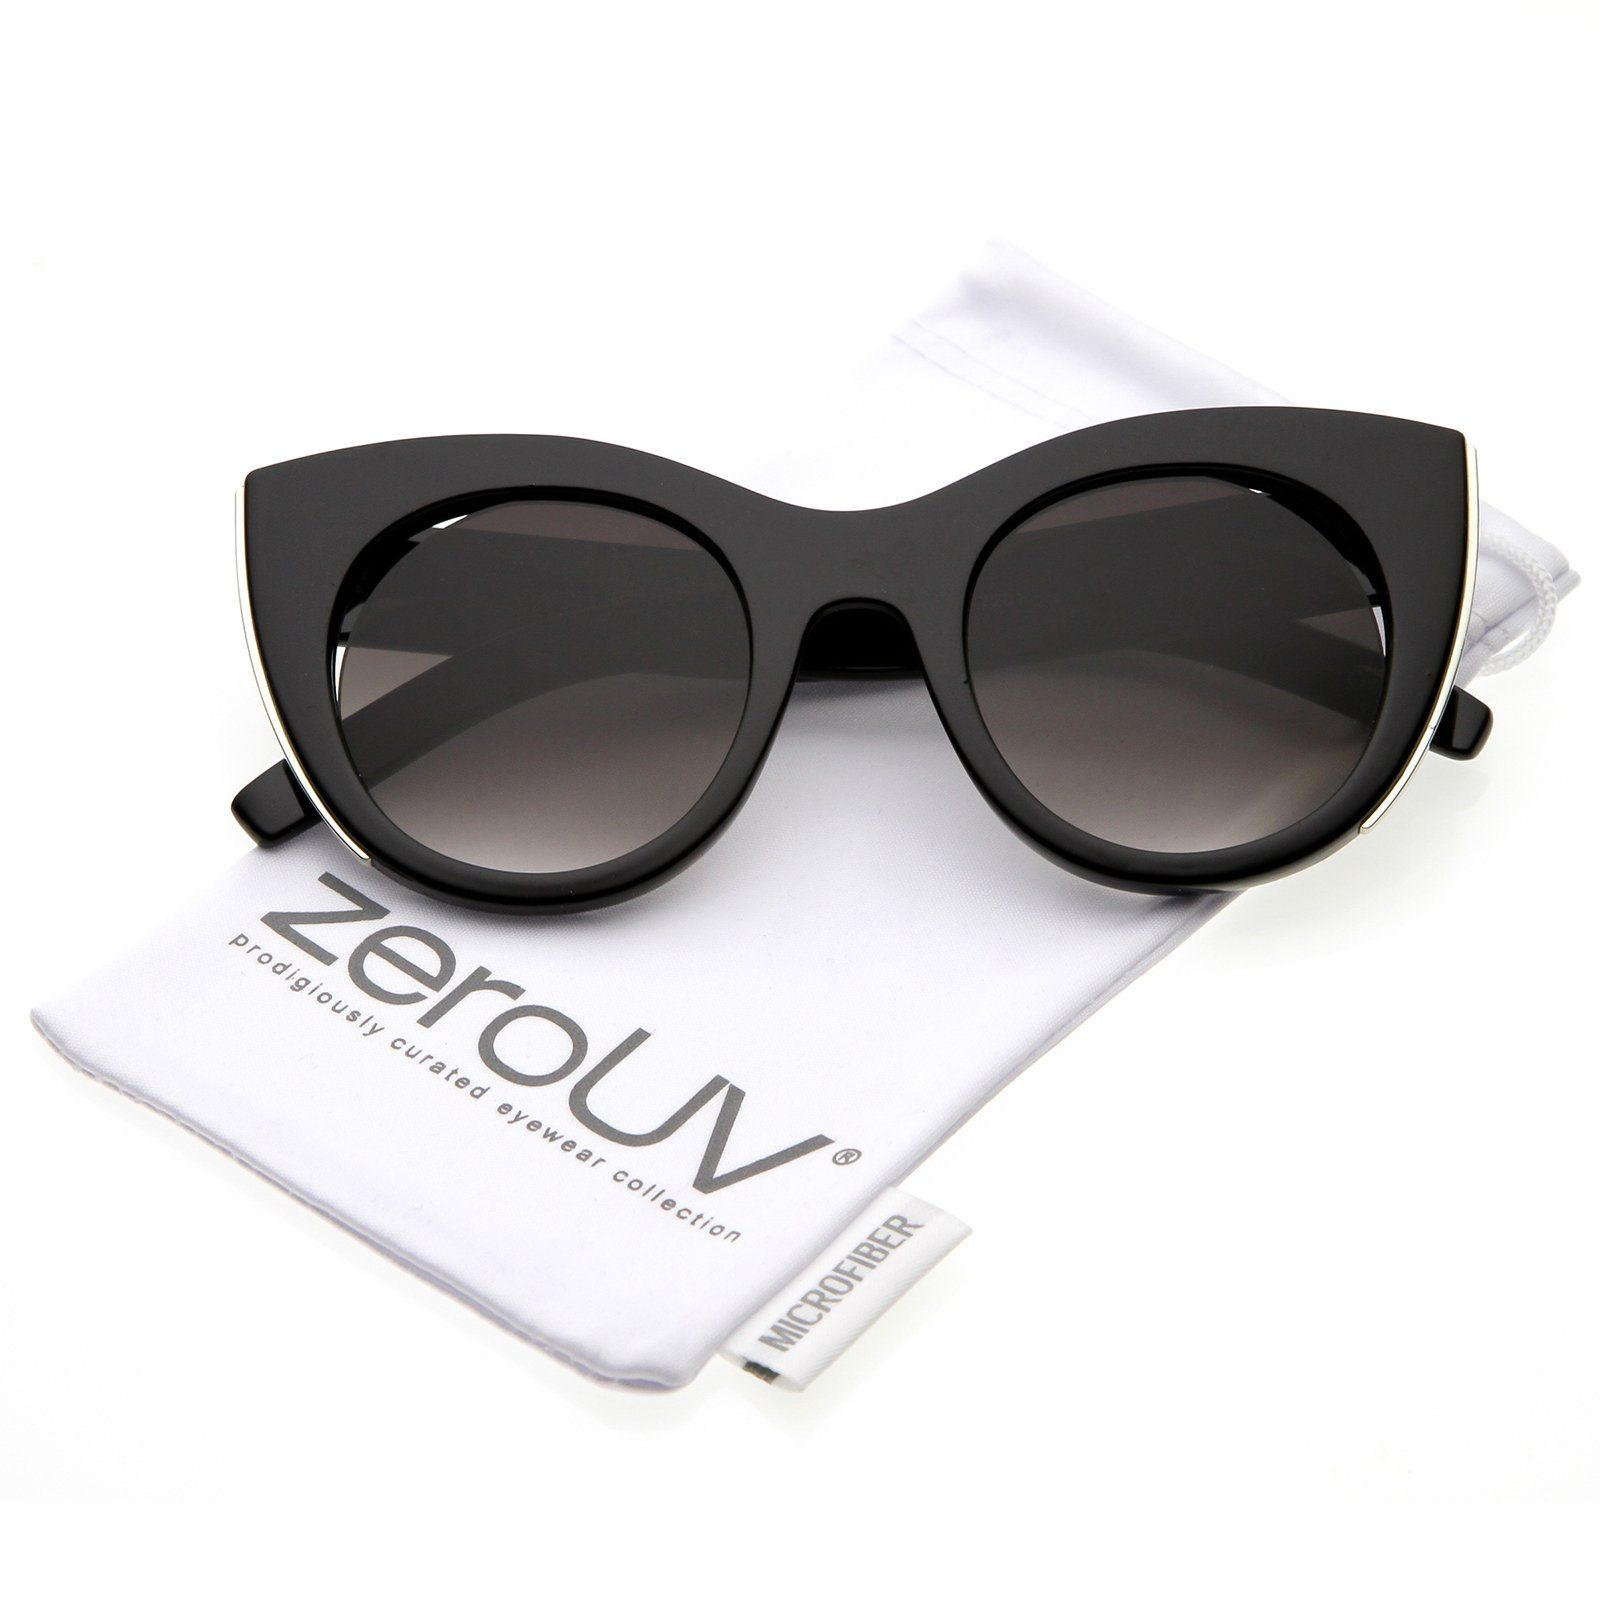 fdeedf5bfe zeroUV Womens Oversize Cat Eye Sunglasses With Metal Trim Cutouts And Round  Flat Lens 48mm Black